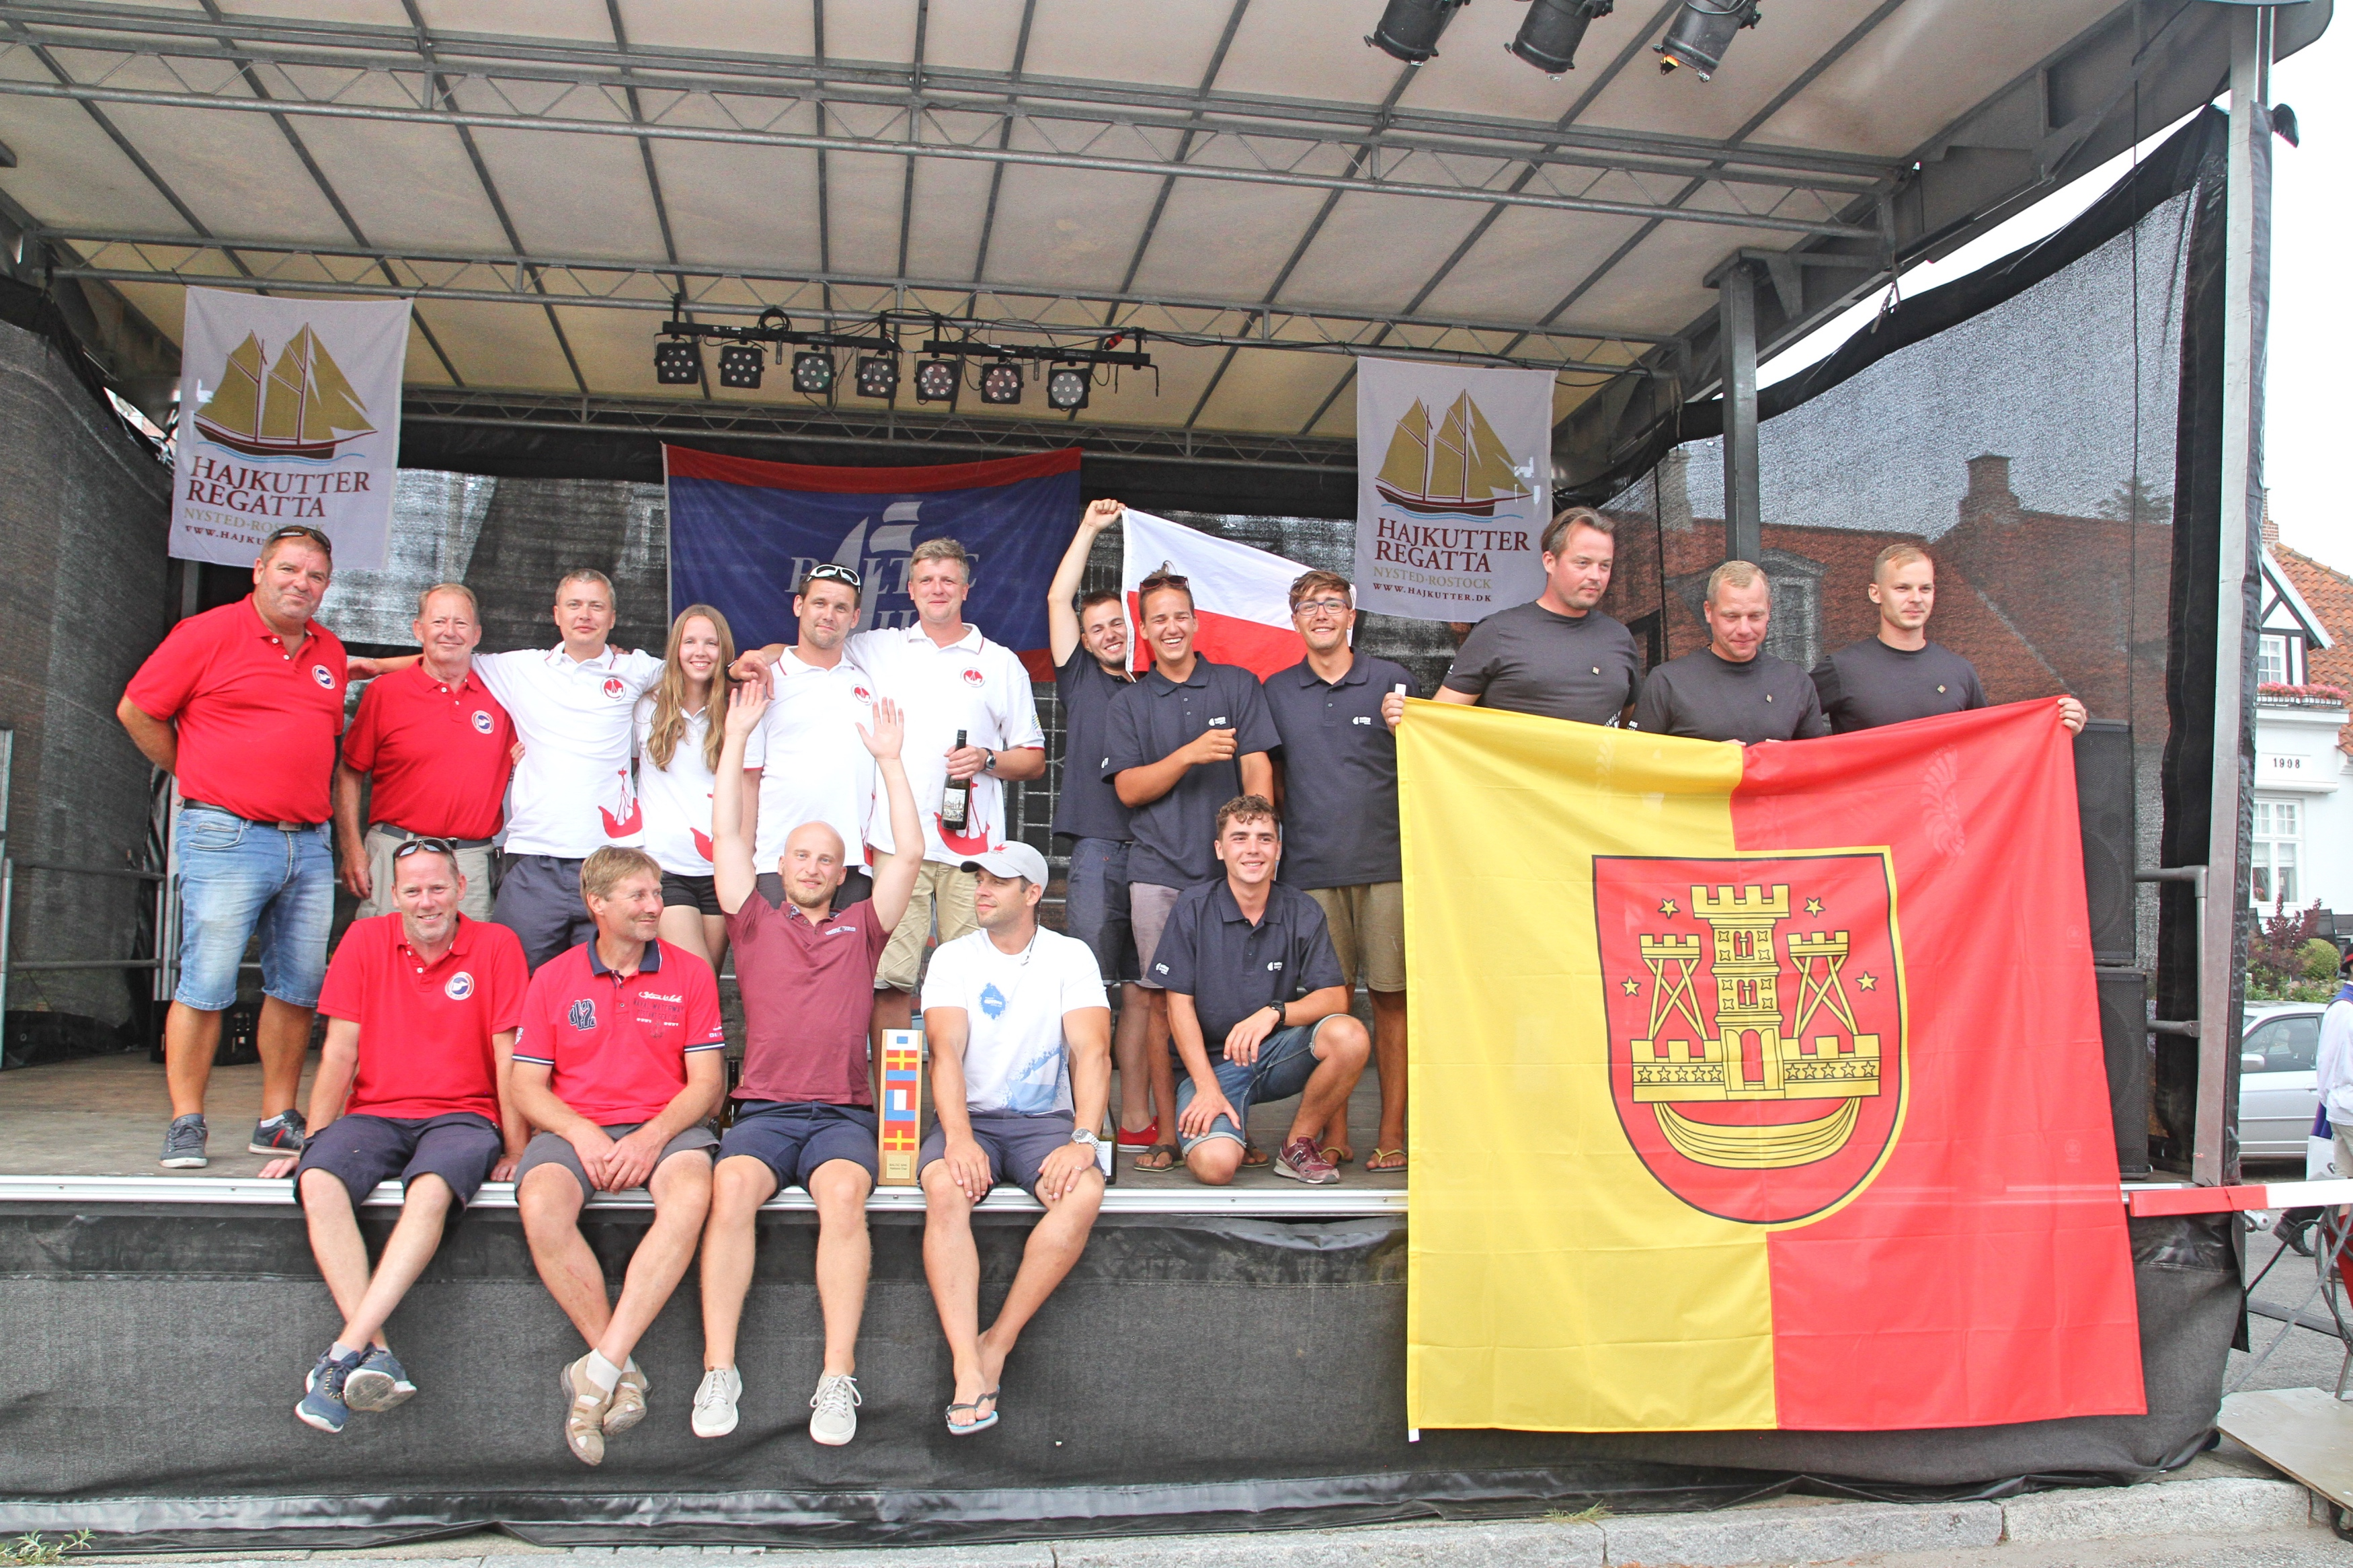 Hajkutter Festival & Regatta_Baltic Sail Nations Cup Nysted_04082018 (photo: Dirk Behm)